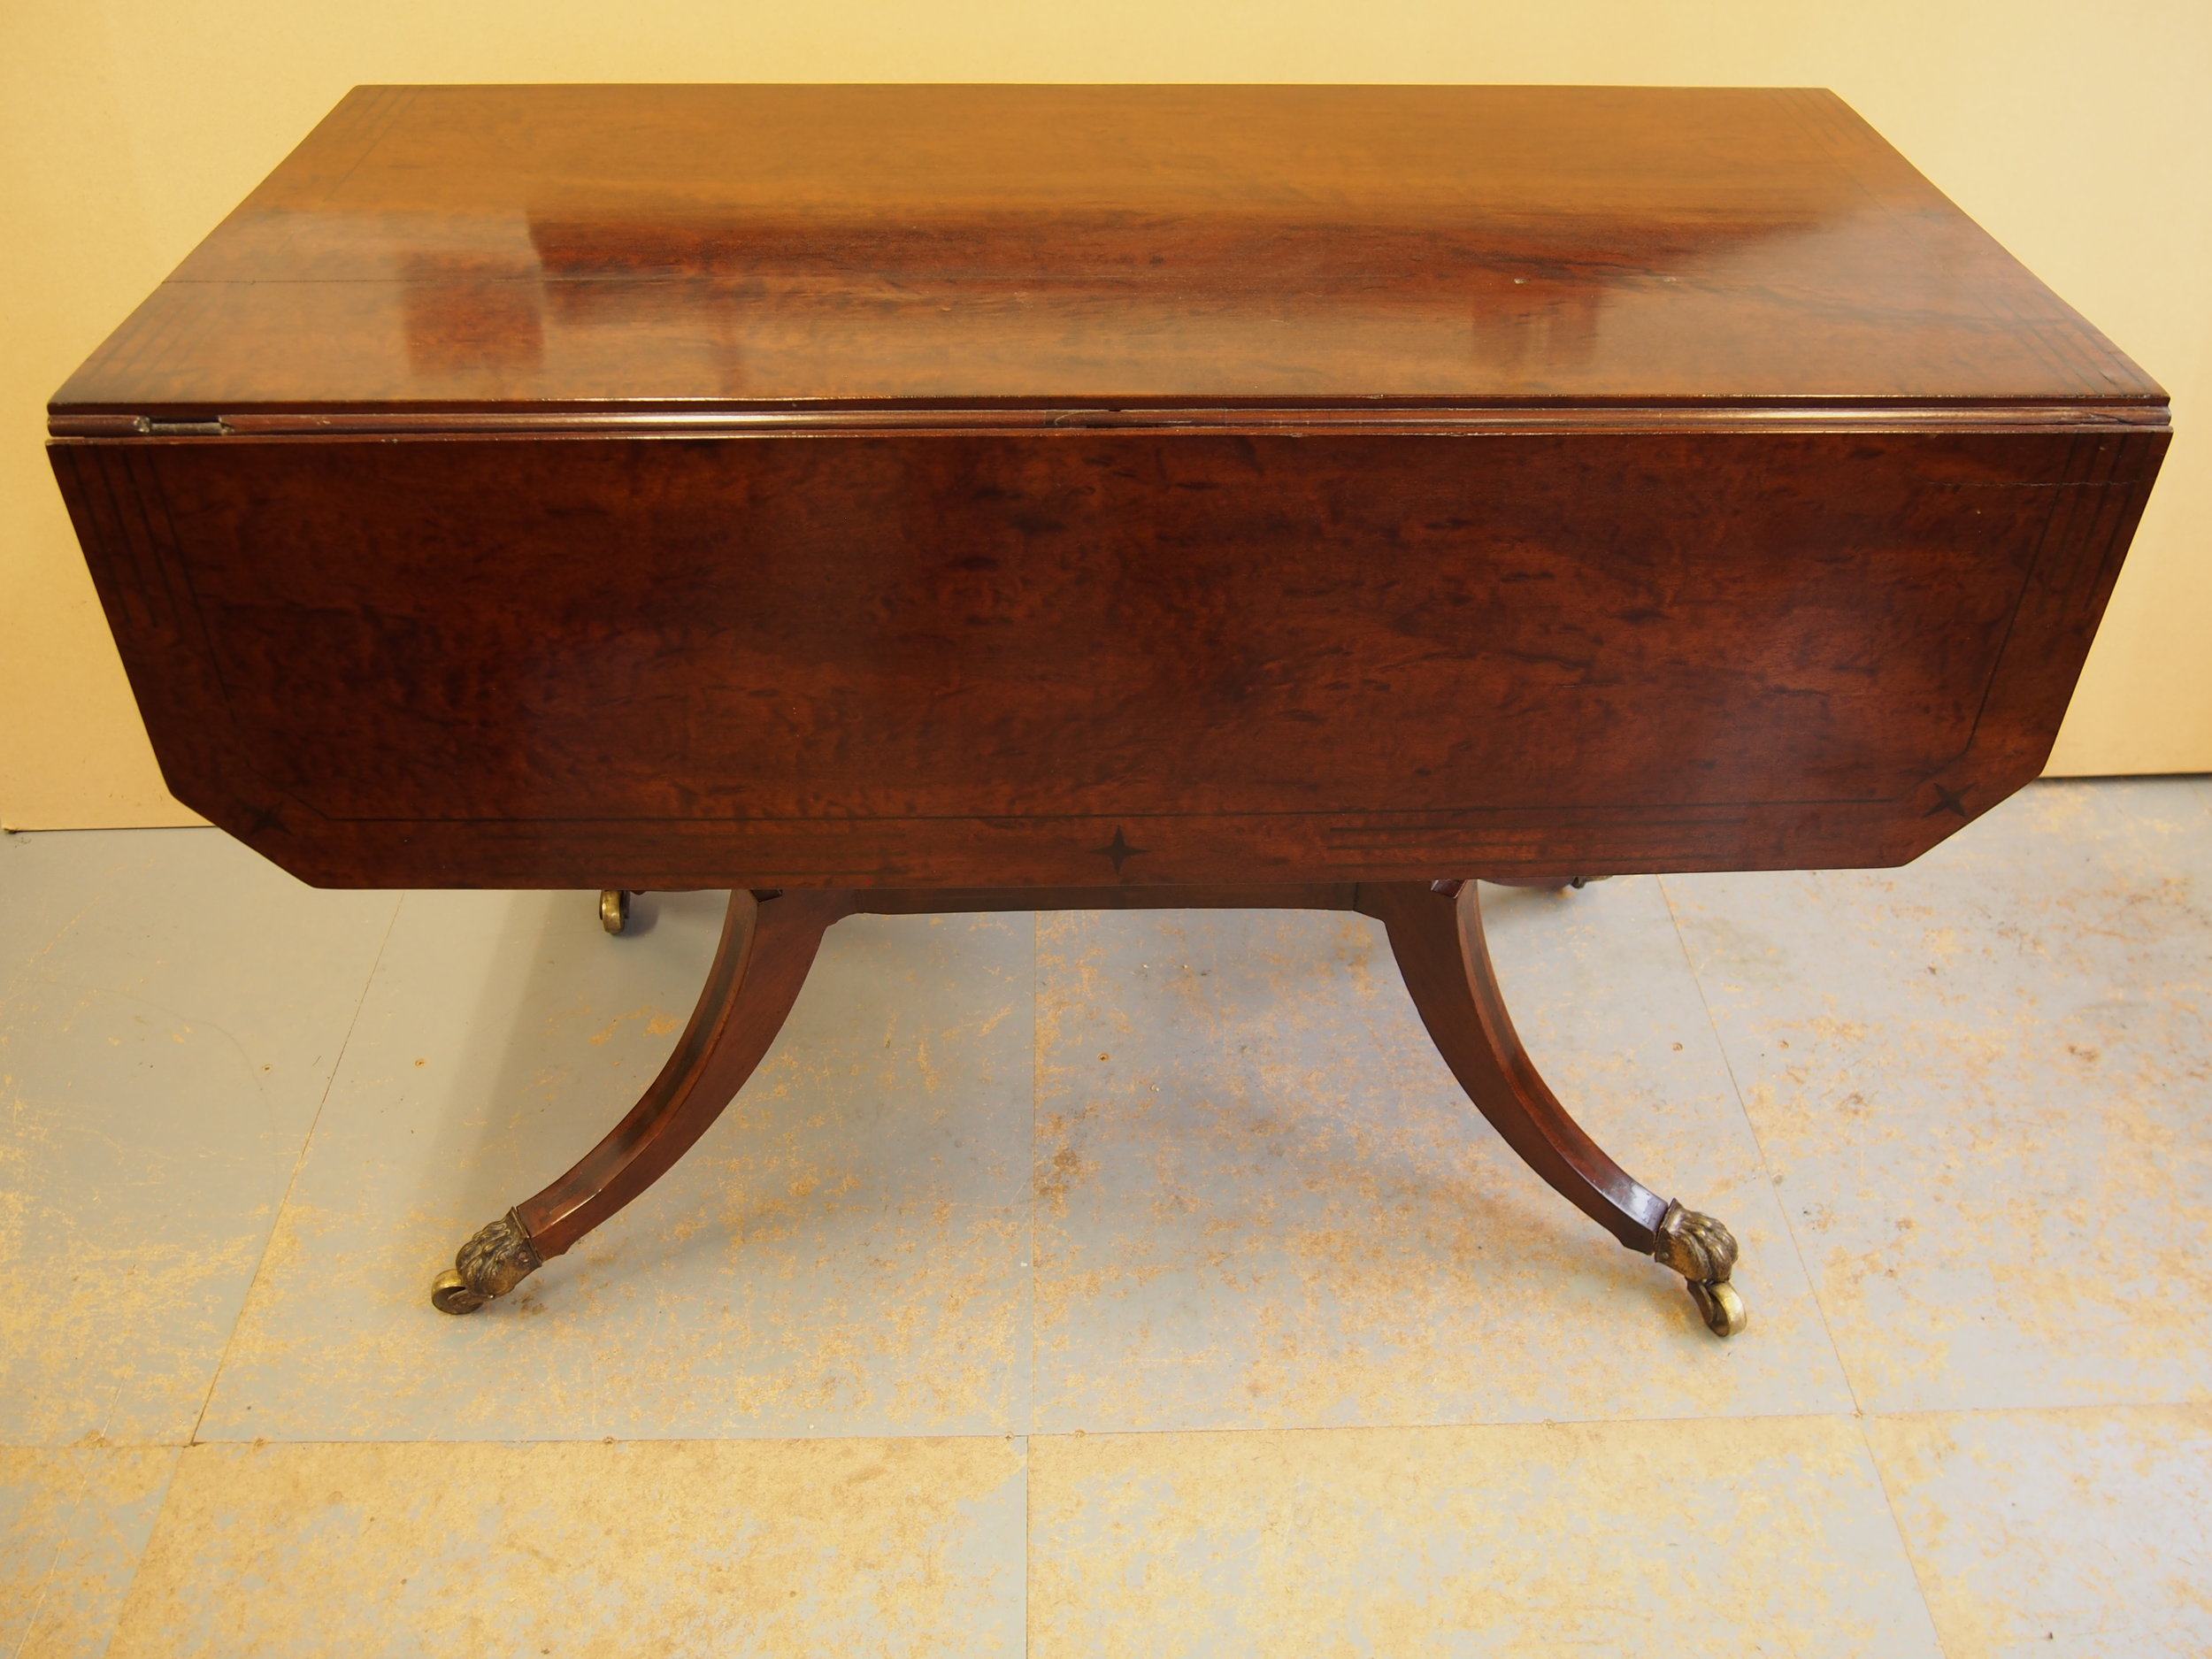 The restoration and repair of this Card Table was to repair a loose and broken Lions claw castor.